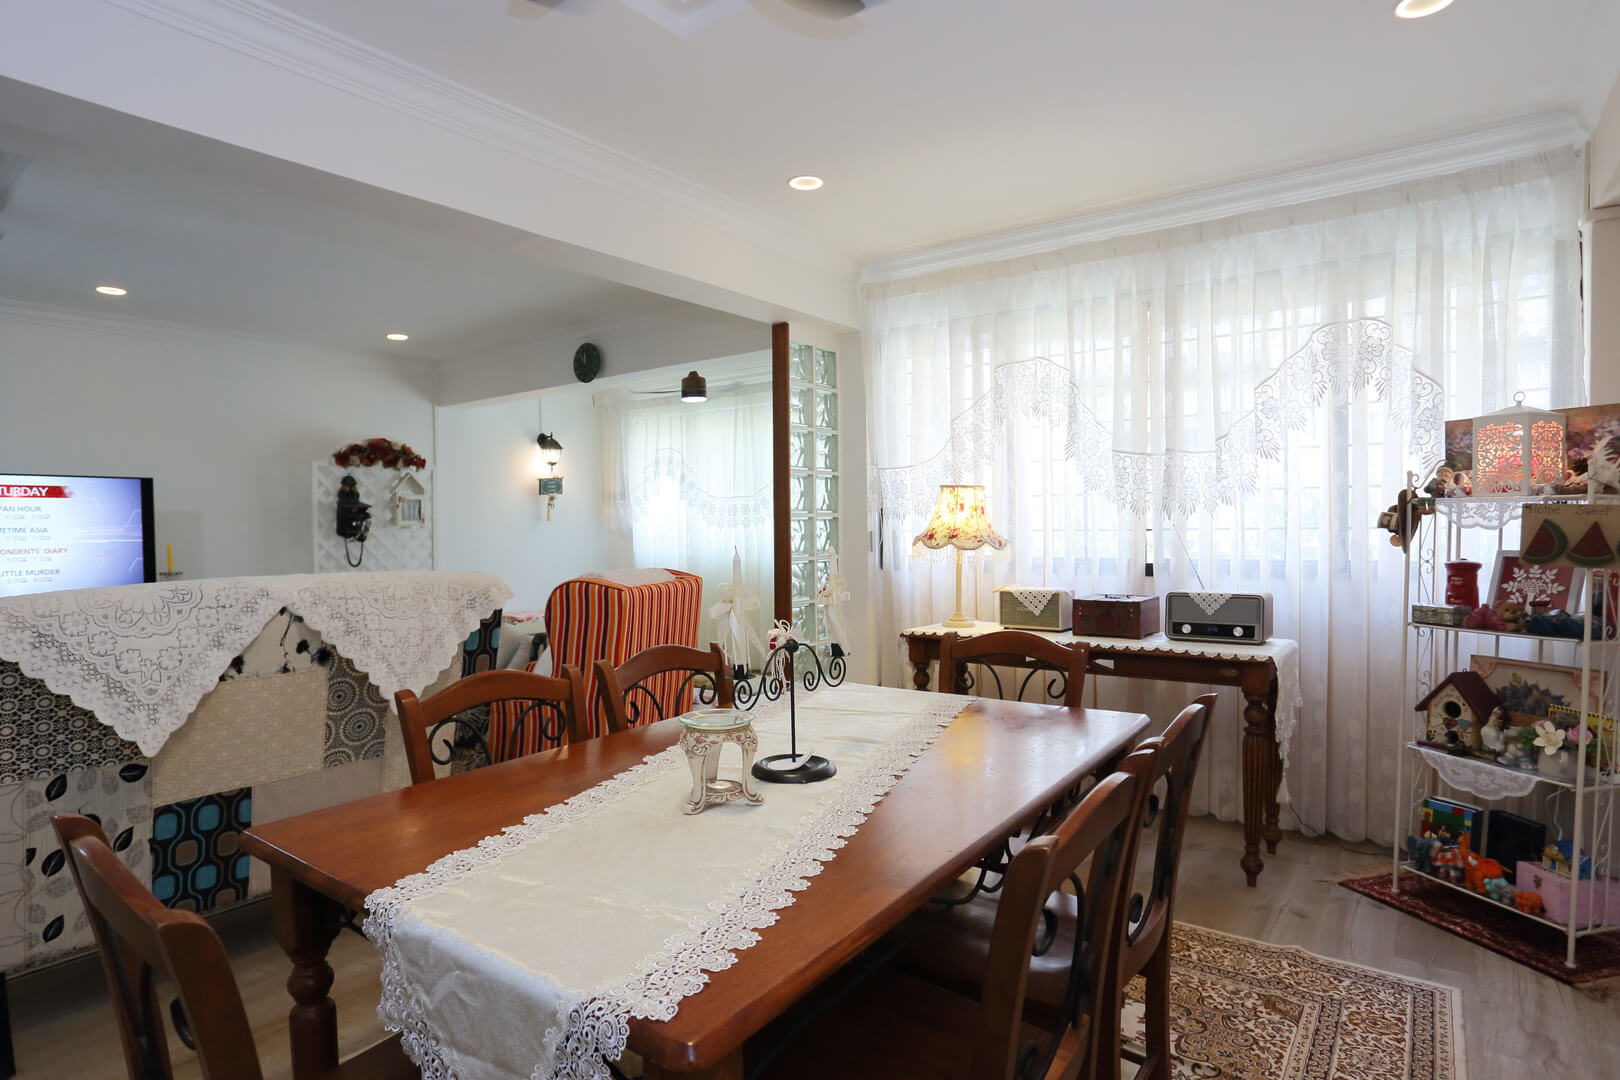 Country Chic Ambiance Interior Design Living Dining Area View